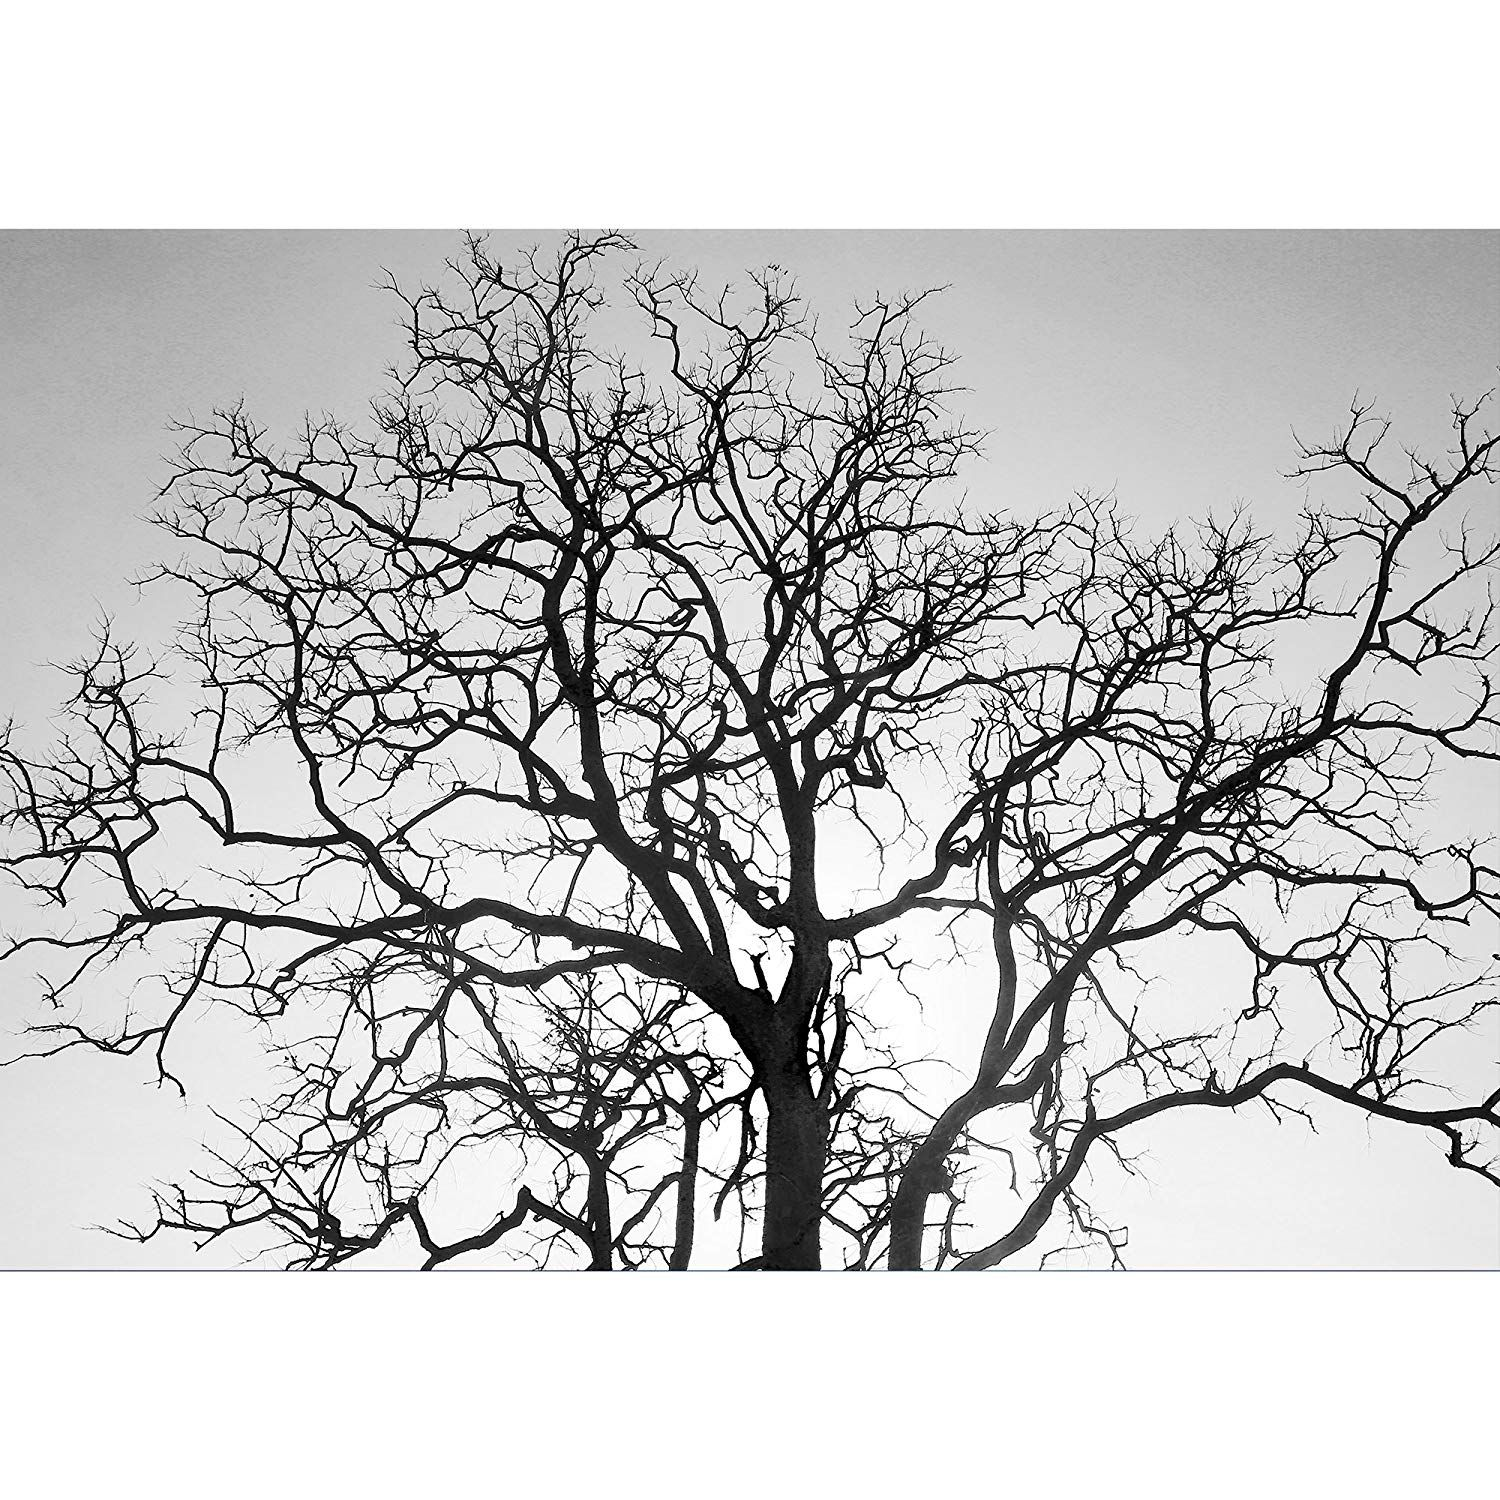 Dead Tree Branch Black and White Tree branches